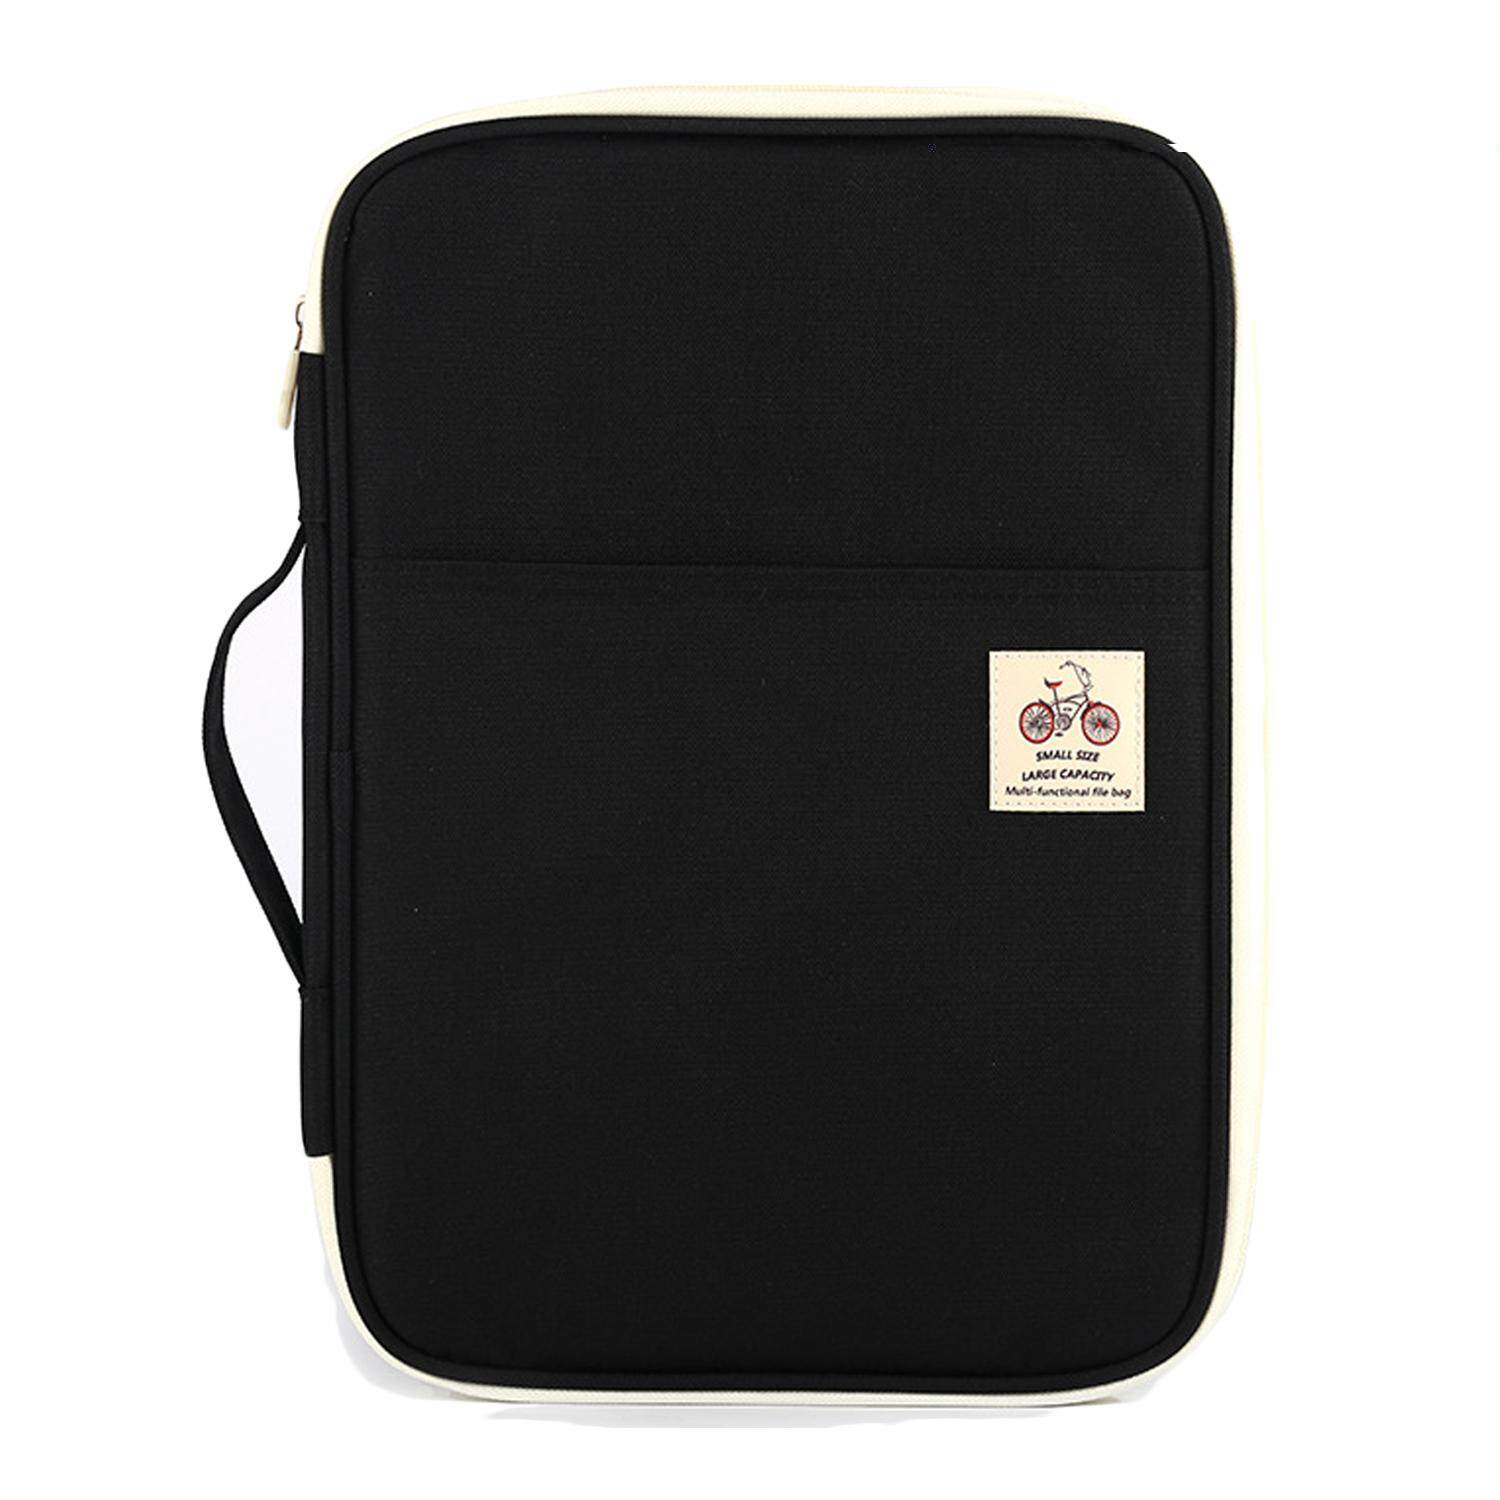 Mua Travel A4 Multi-function Documents Bag Files Organizer Messenger Handbag Storage Case Bag for iPad Tablet Notebook Black